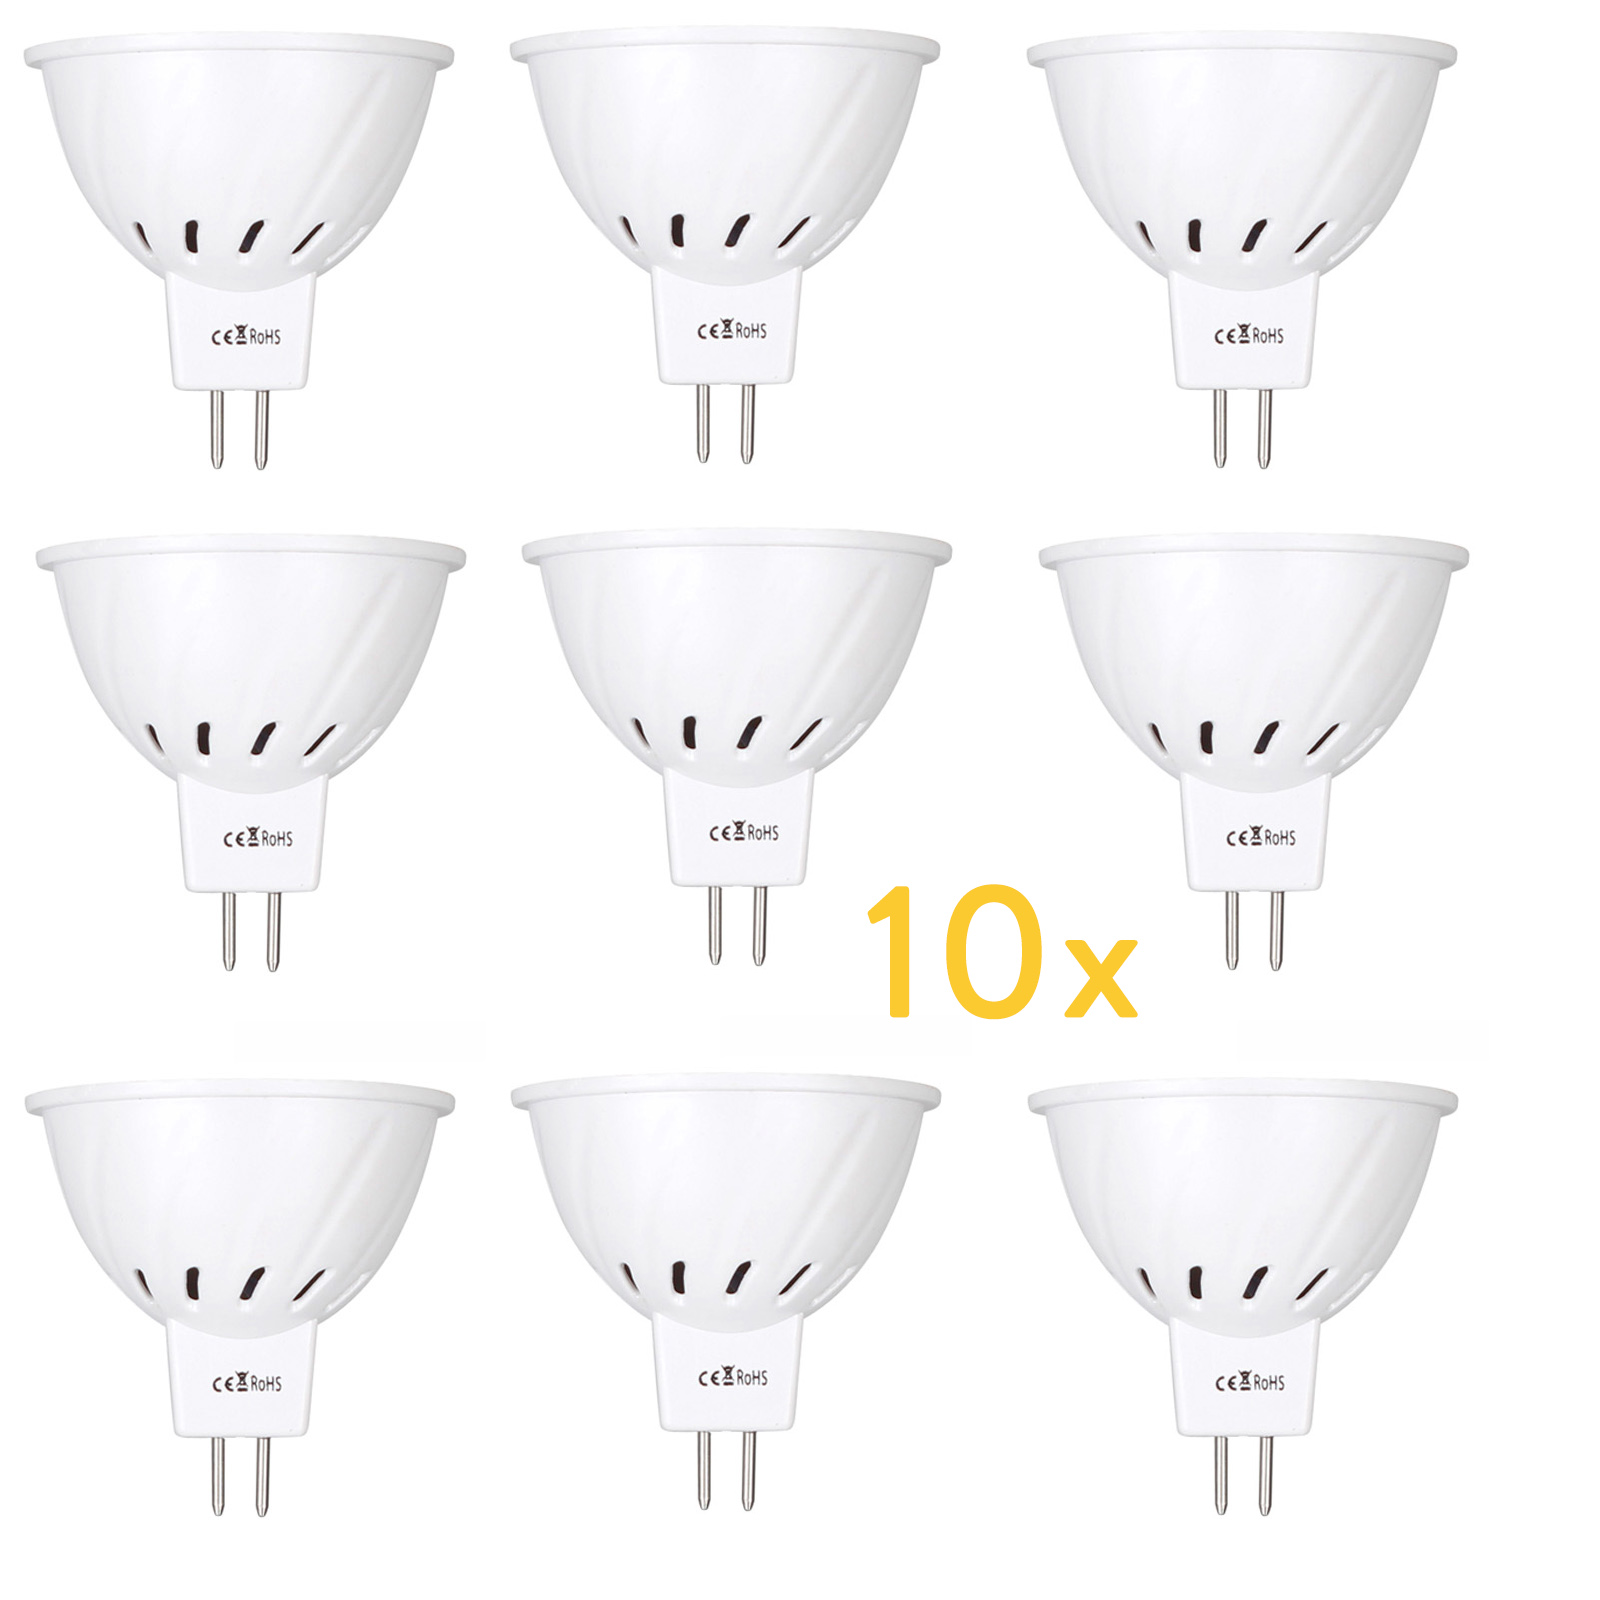 10x MR16 12V-<font><b>24V</b></font> <font><b>LED</b></font> <font><b>Bulbs</b></font> Light 220V SMD 2835 <font><b>Led</b></font> Spotlights 4W 6W 8W 36 54 72LED Warm Cold Warm White MR 16 <font><b>LED</b></font> Lamp For Home image